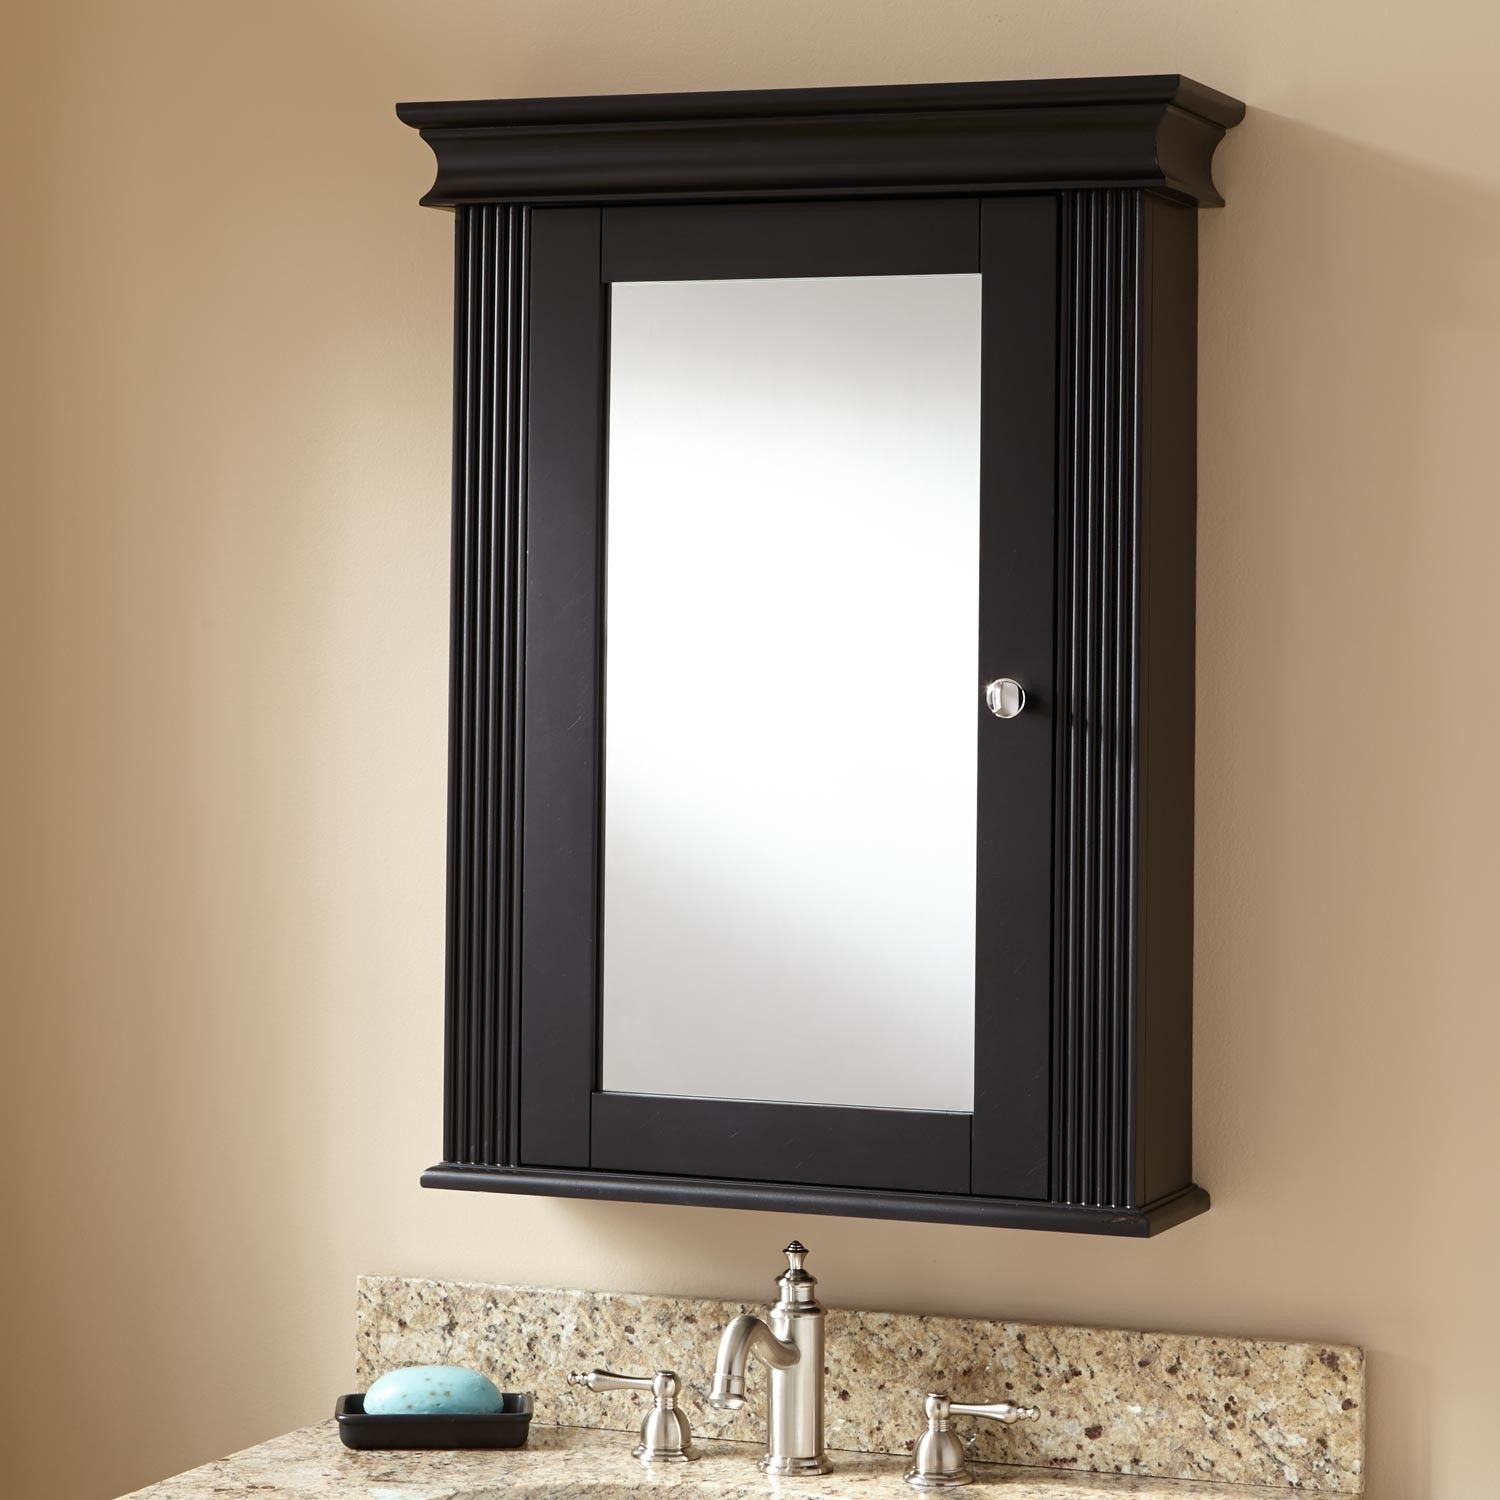 Bathroom mirror cabinet 1500 | ideas | Pinterest | Bathroom mirror ...